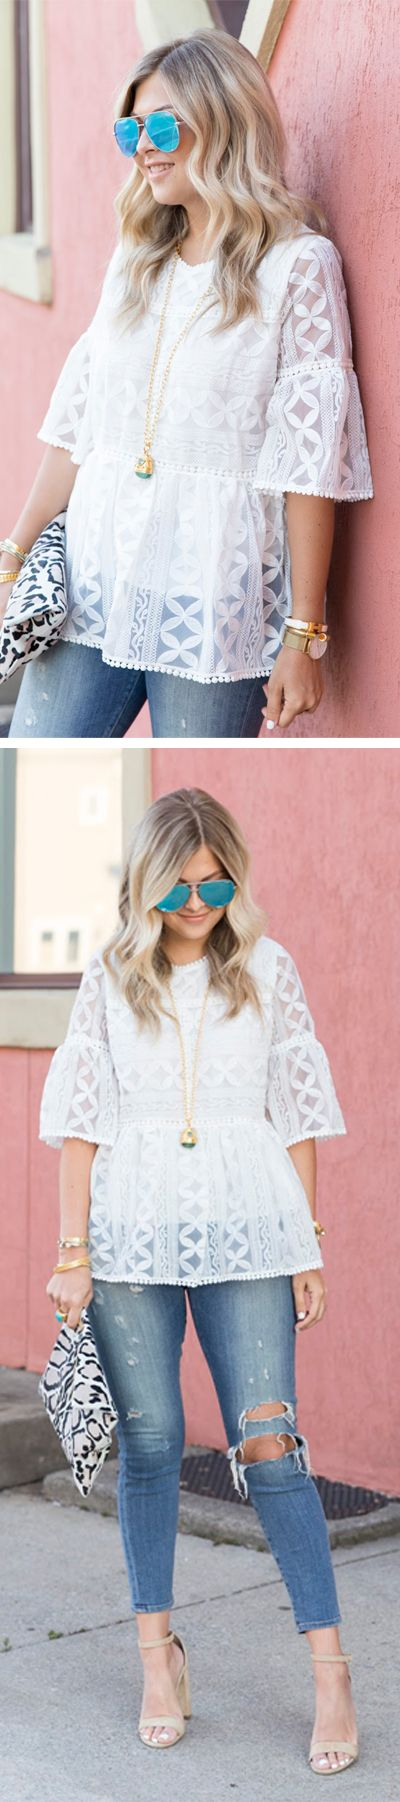 Summer's going to love you back in this loose-fitting dolly top with an eyelet lace design. Summer Lovin' Embroidered Dolly Top featured by Suburbanfauxpas Blog